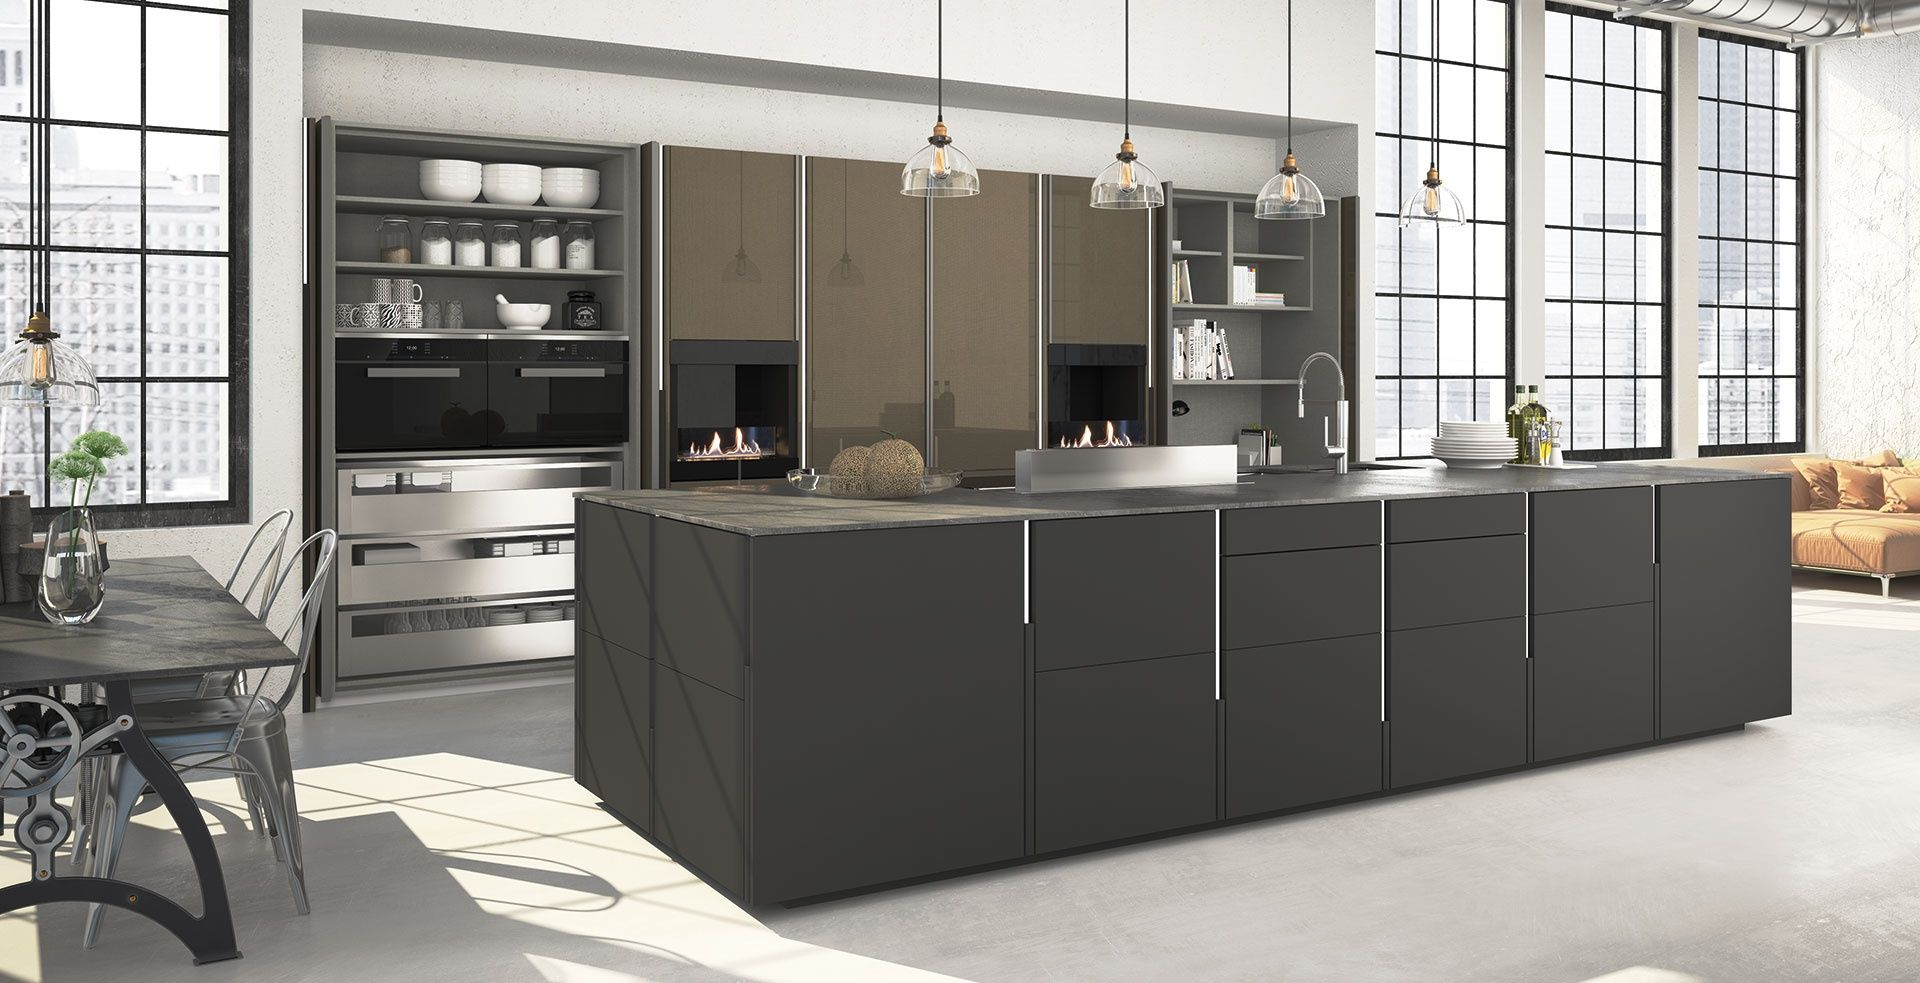 Störmer Küche Küchen Bern Schulweg 5a, 3283 Kallnach 032 392 82 82 Info@moriag.ch Http://www.mori-kuechen.ch/referenzen | German Kitchen, Modern Kitchen 3d, Kitchen Design